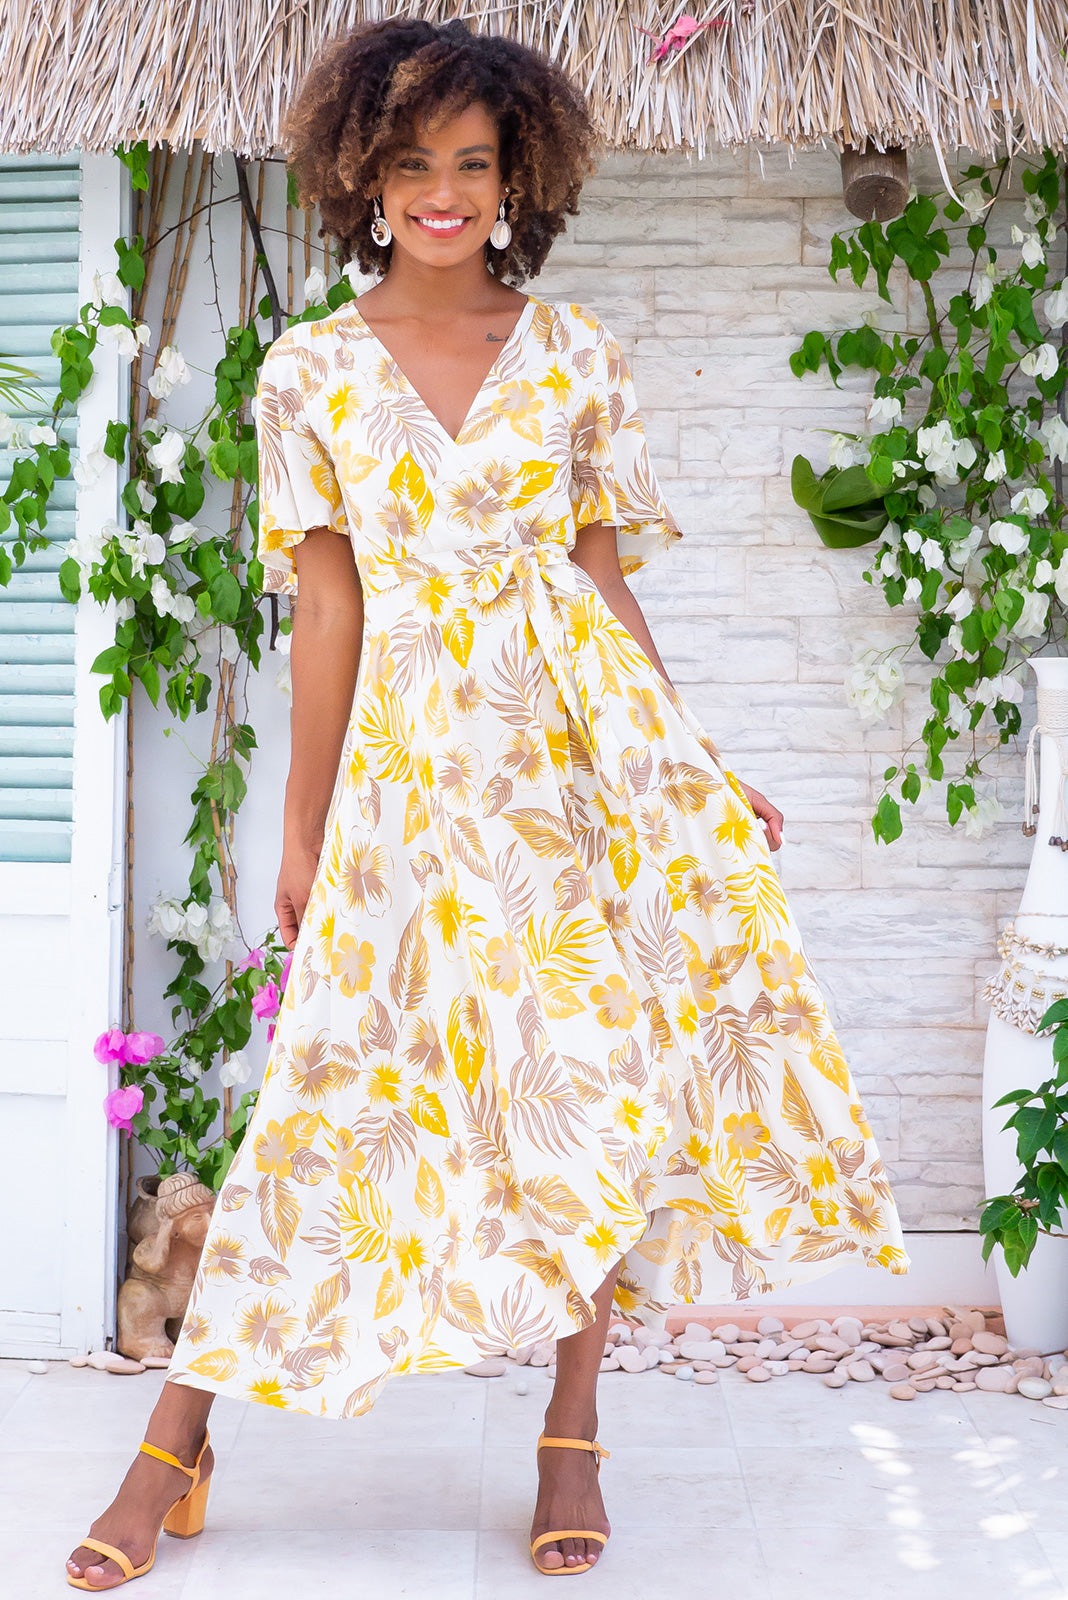 Petal Golden Palms Maxi Wrap Dress, a must-have tropical dress has midi length at front, maxi length at back, elasticised waistband at back, floaty petal sleeves, ream base with yellow gold and taupe floral print in woven 100% rayon.